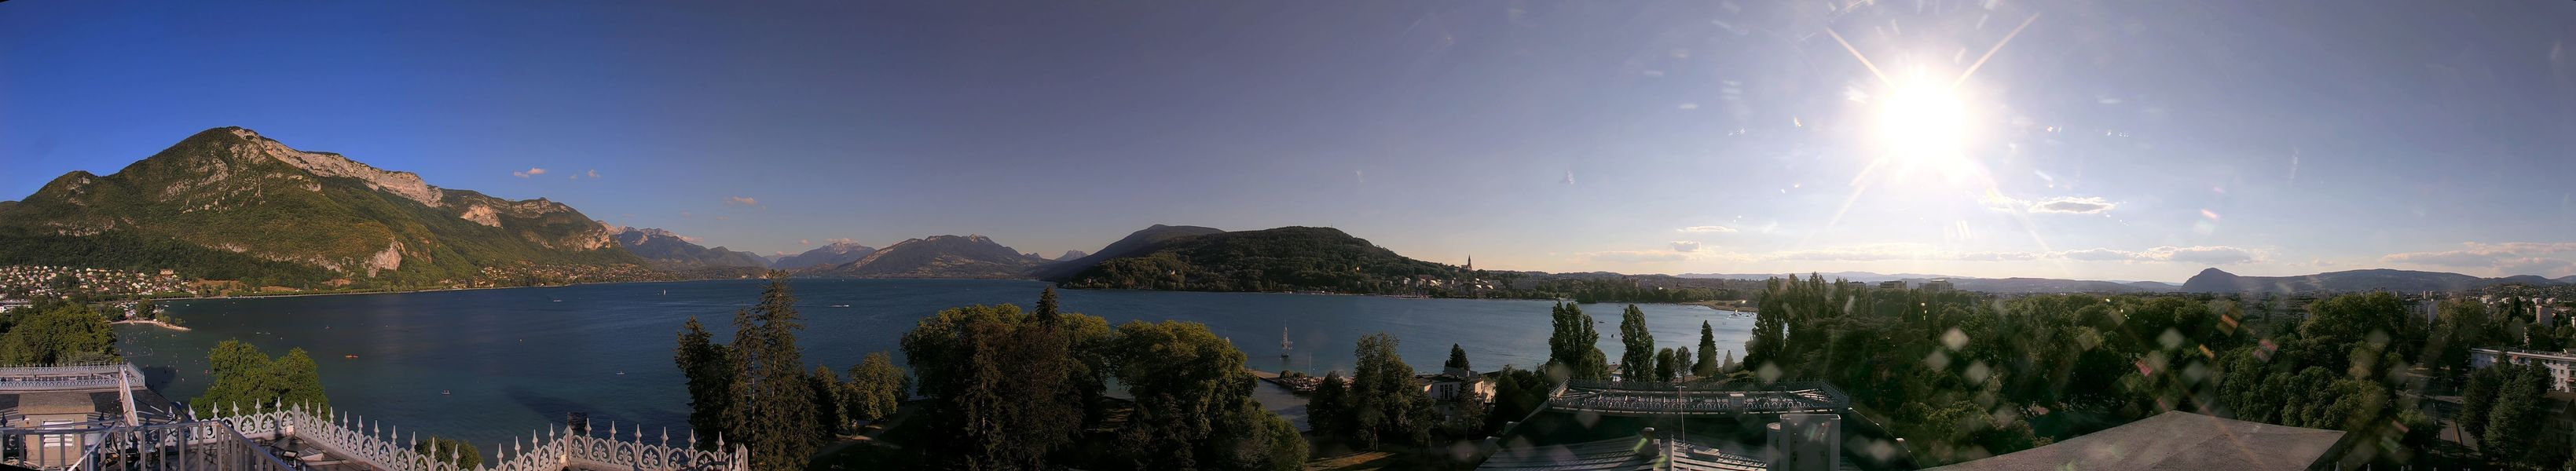 Webcam  panoramique lac annecy